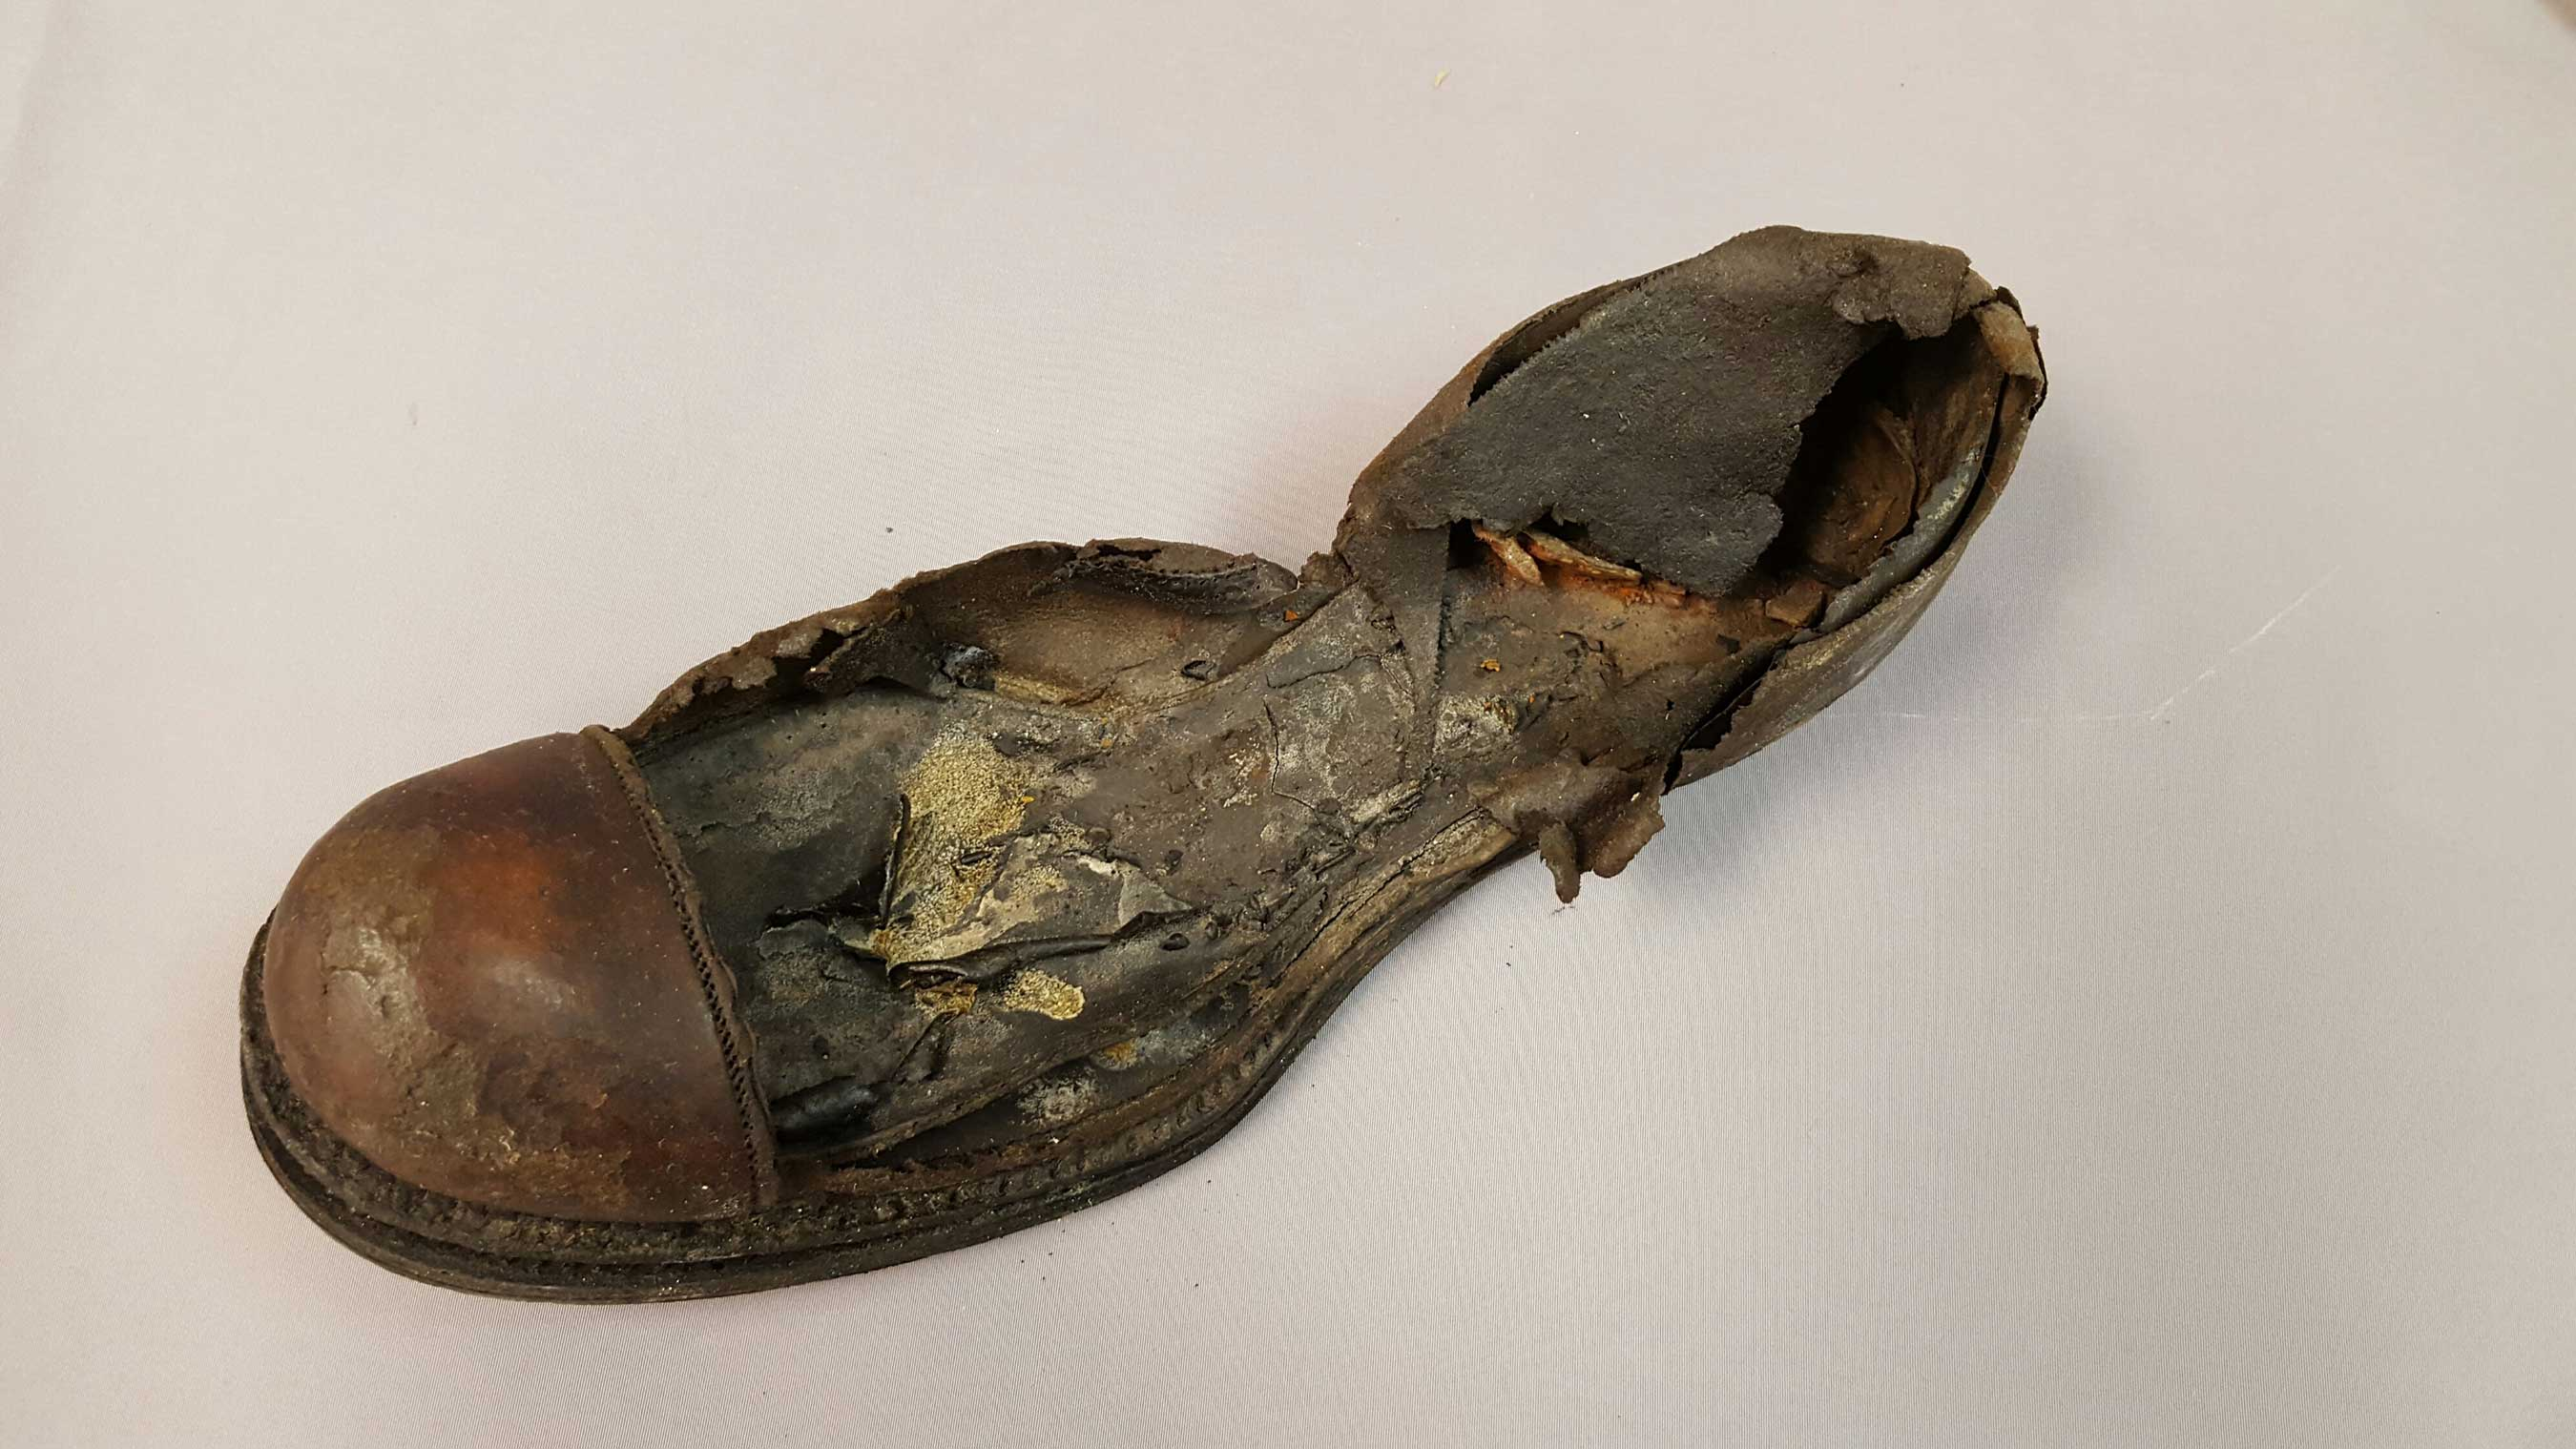 This men's leather shoe fragment consists of the welt, top cap and partial quarter with the insole. This shoe has never been previously exhibited due to its fragile condition. (Credit Premier Exhibitions)